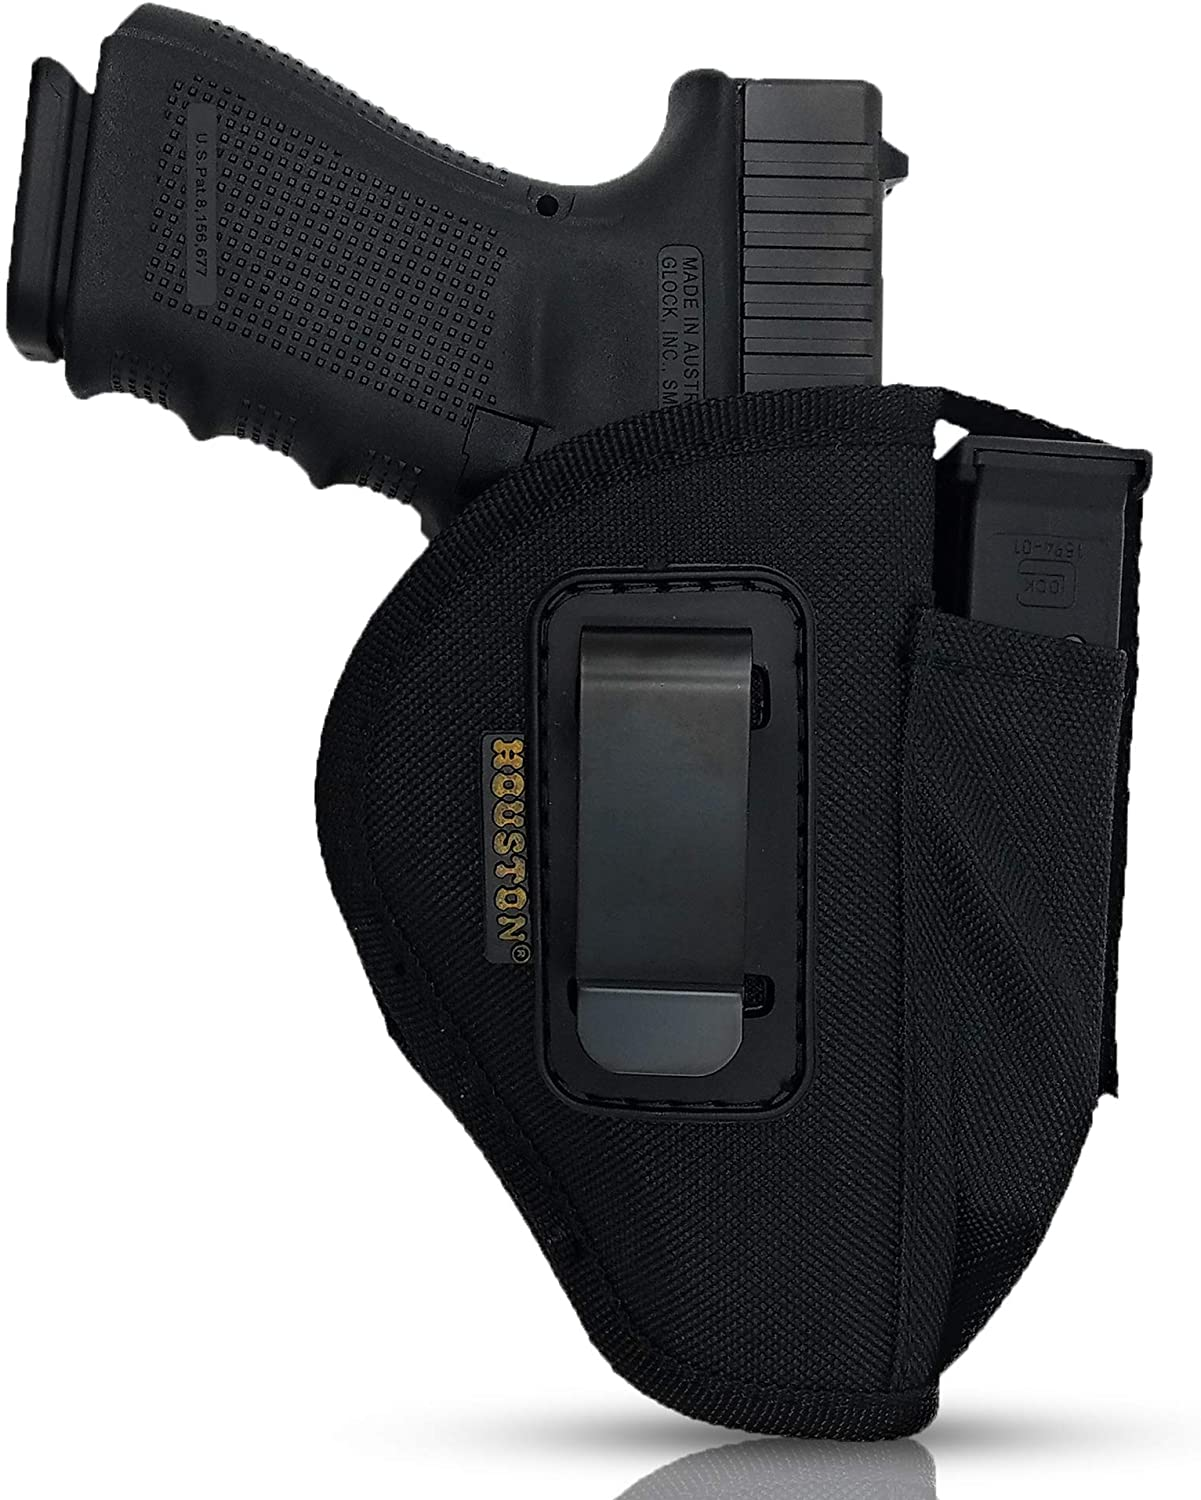 IWB and OWB Gun + Mag Holster - by Houston - Tactical Nylon | Ambidextrous Inside and Outside The Waistband | Fits: Glock 42, SIG P238 P938, Kahr 380, Kahr 9mm.40 & .45 Cal, SCCY 380 | (Large)